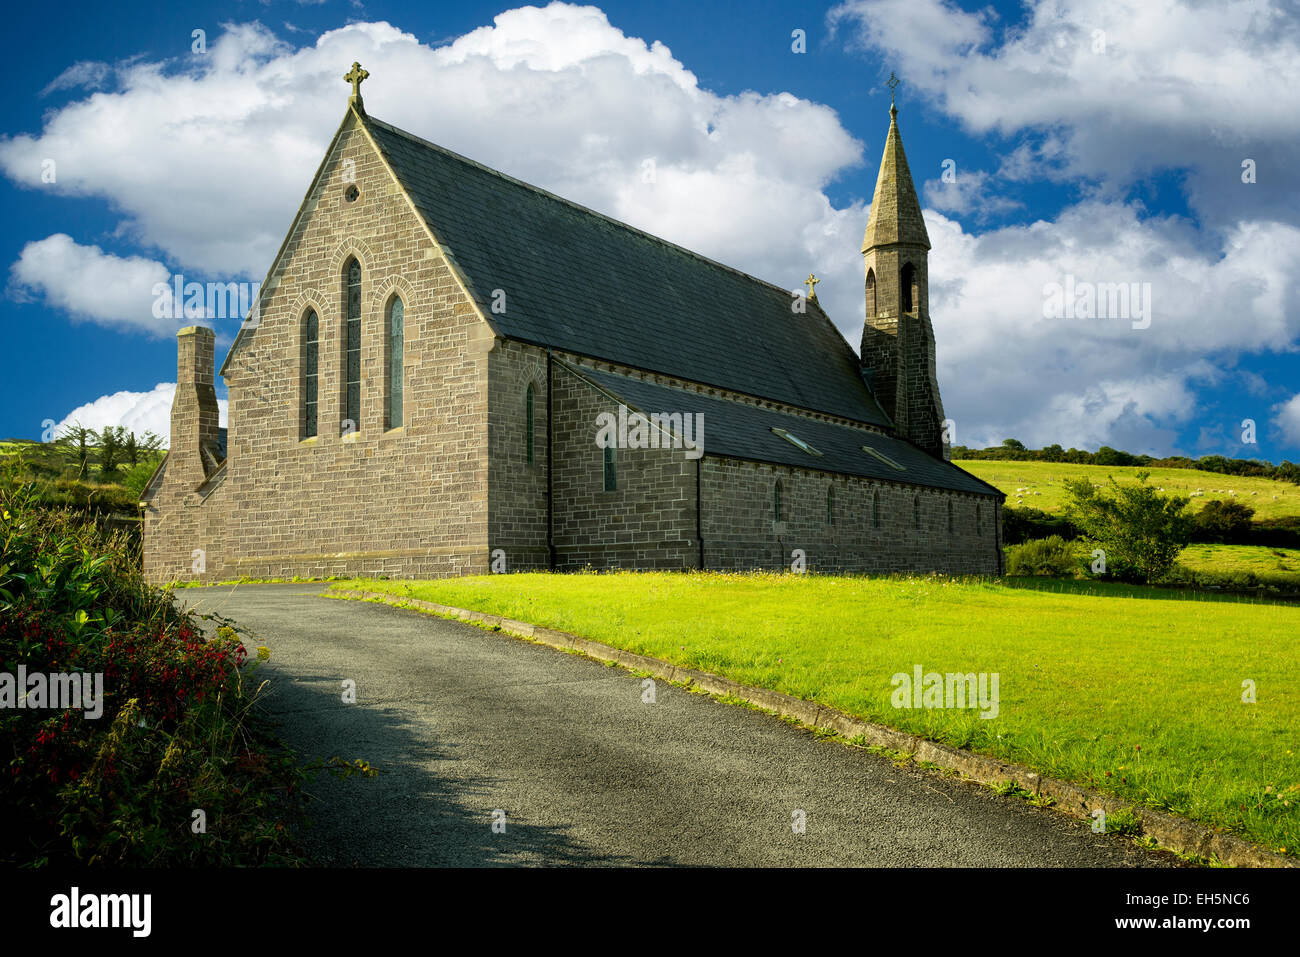 Eglise de Jean le Baptiste. L'église catholique à Dingle, Irlande Photo Stock